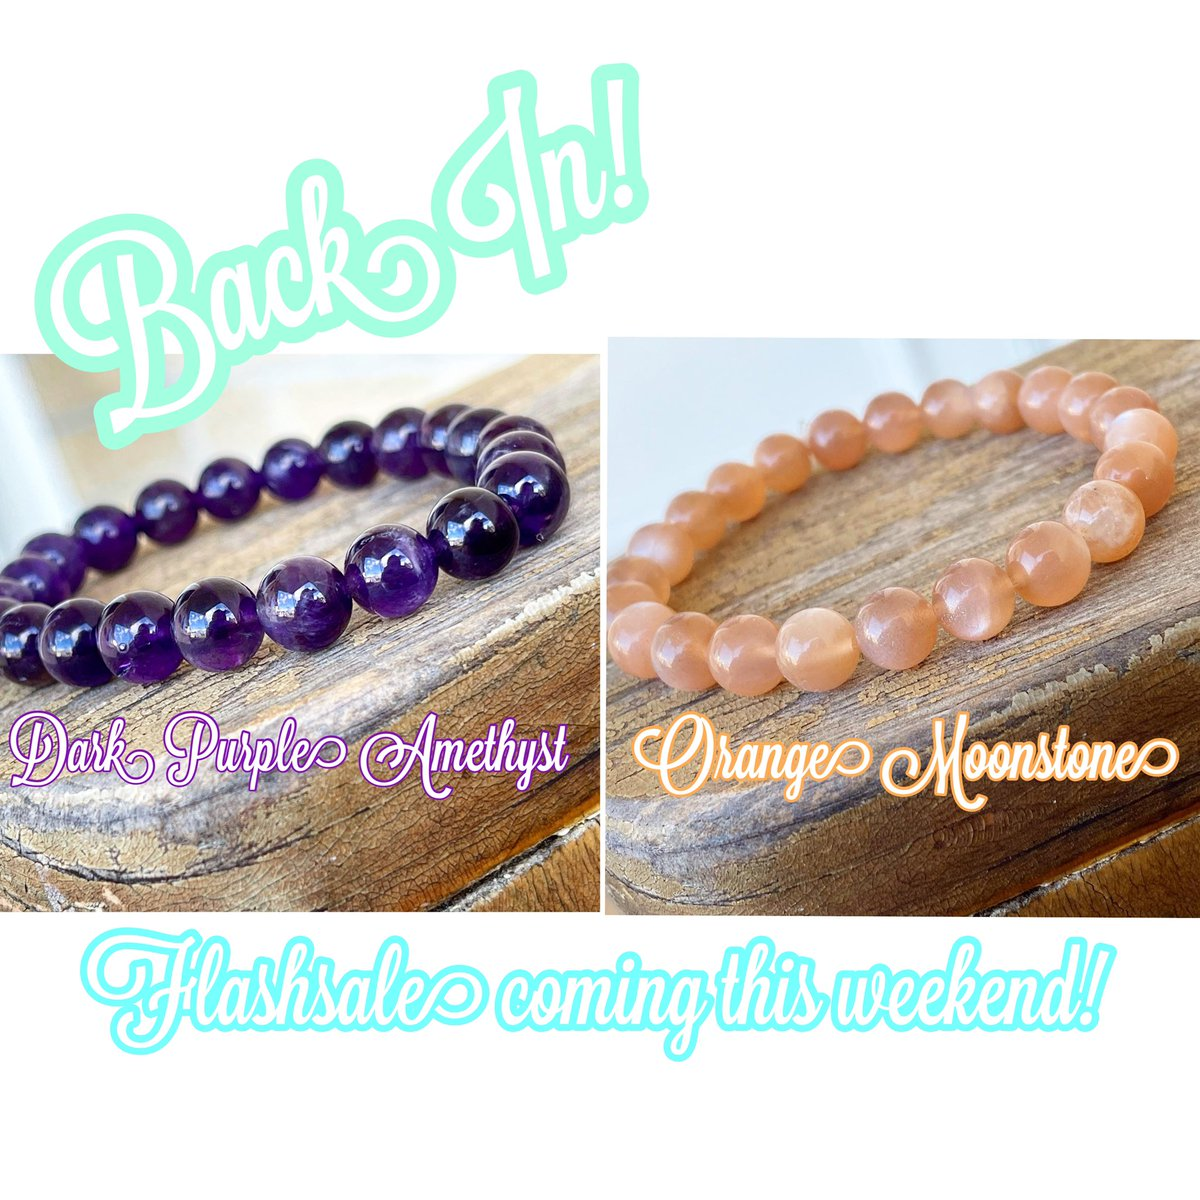 Back in Stock! The Coveted Deep Purple Amethyst and Orange Moonstone! There will also be a Flashsale coming this weekend!   #orange #giftideas #jewelry #ShopSmall #handmade #smallbusinessowner #sale #crystals #moonlight #amethyst